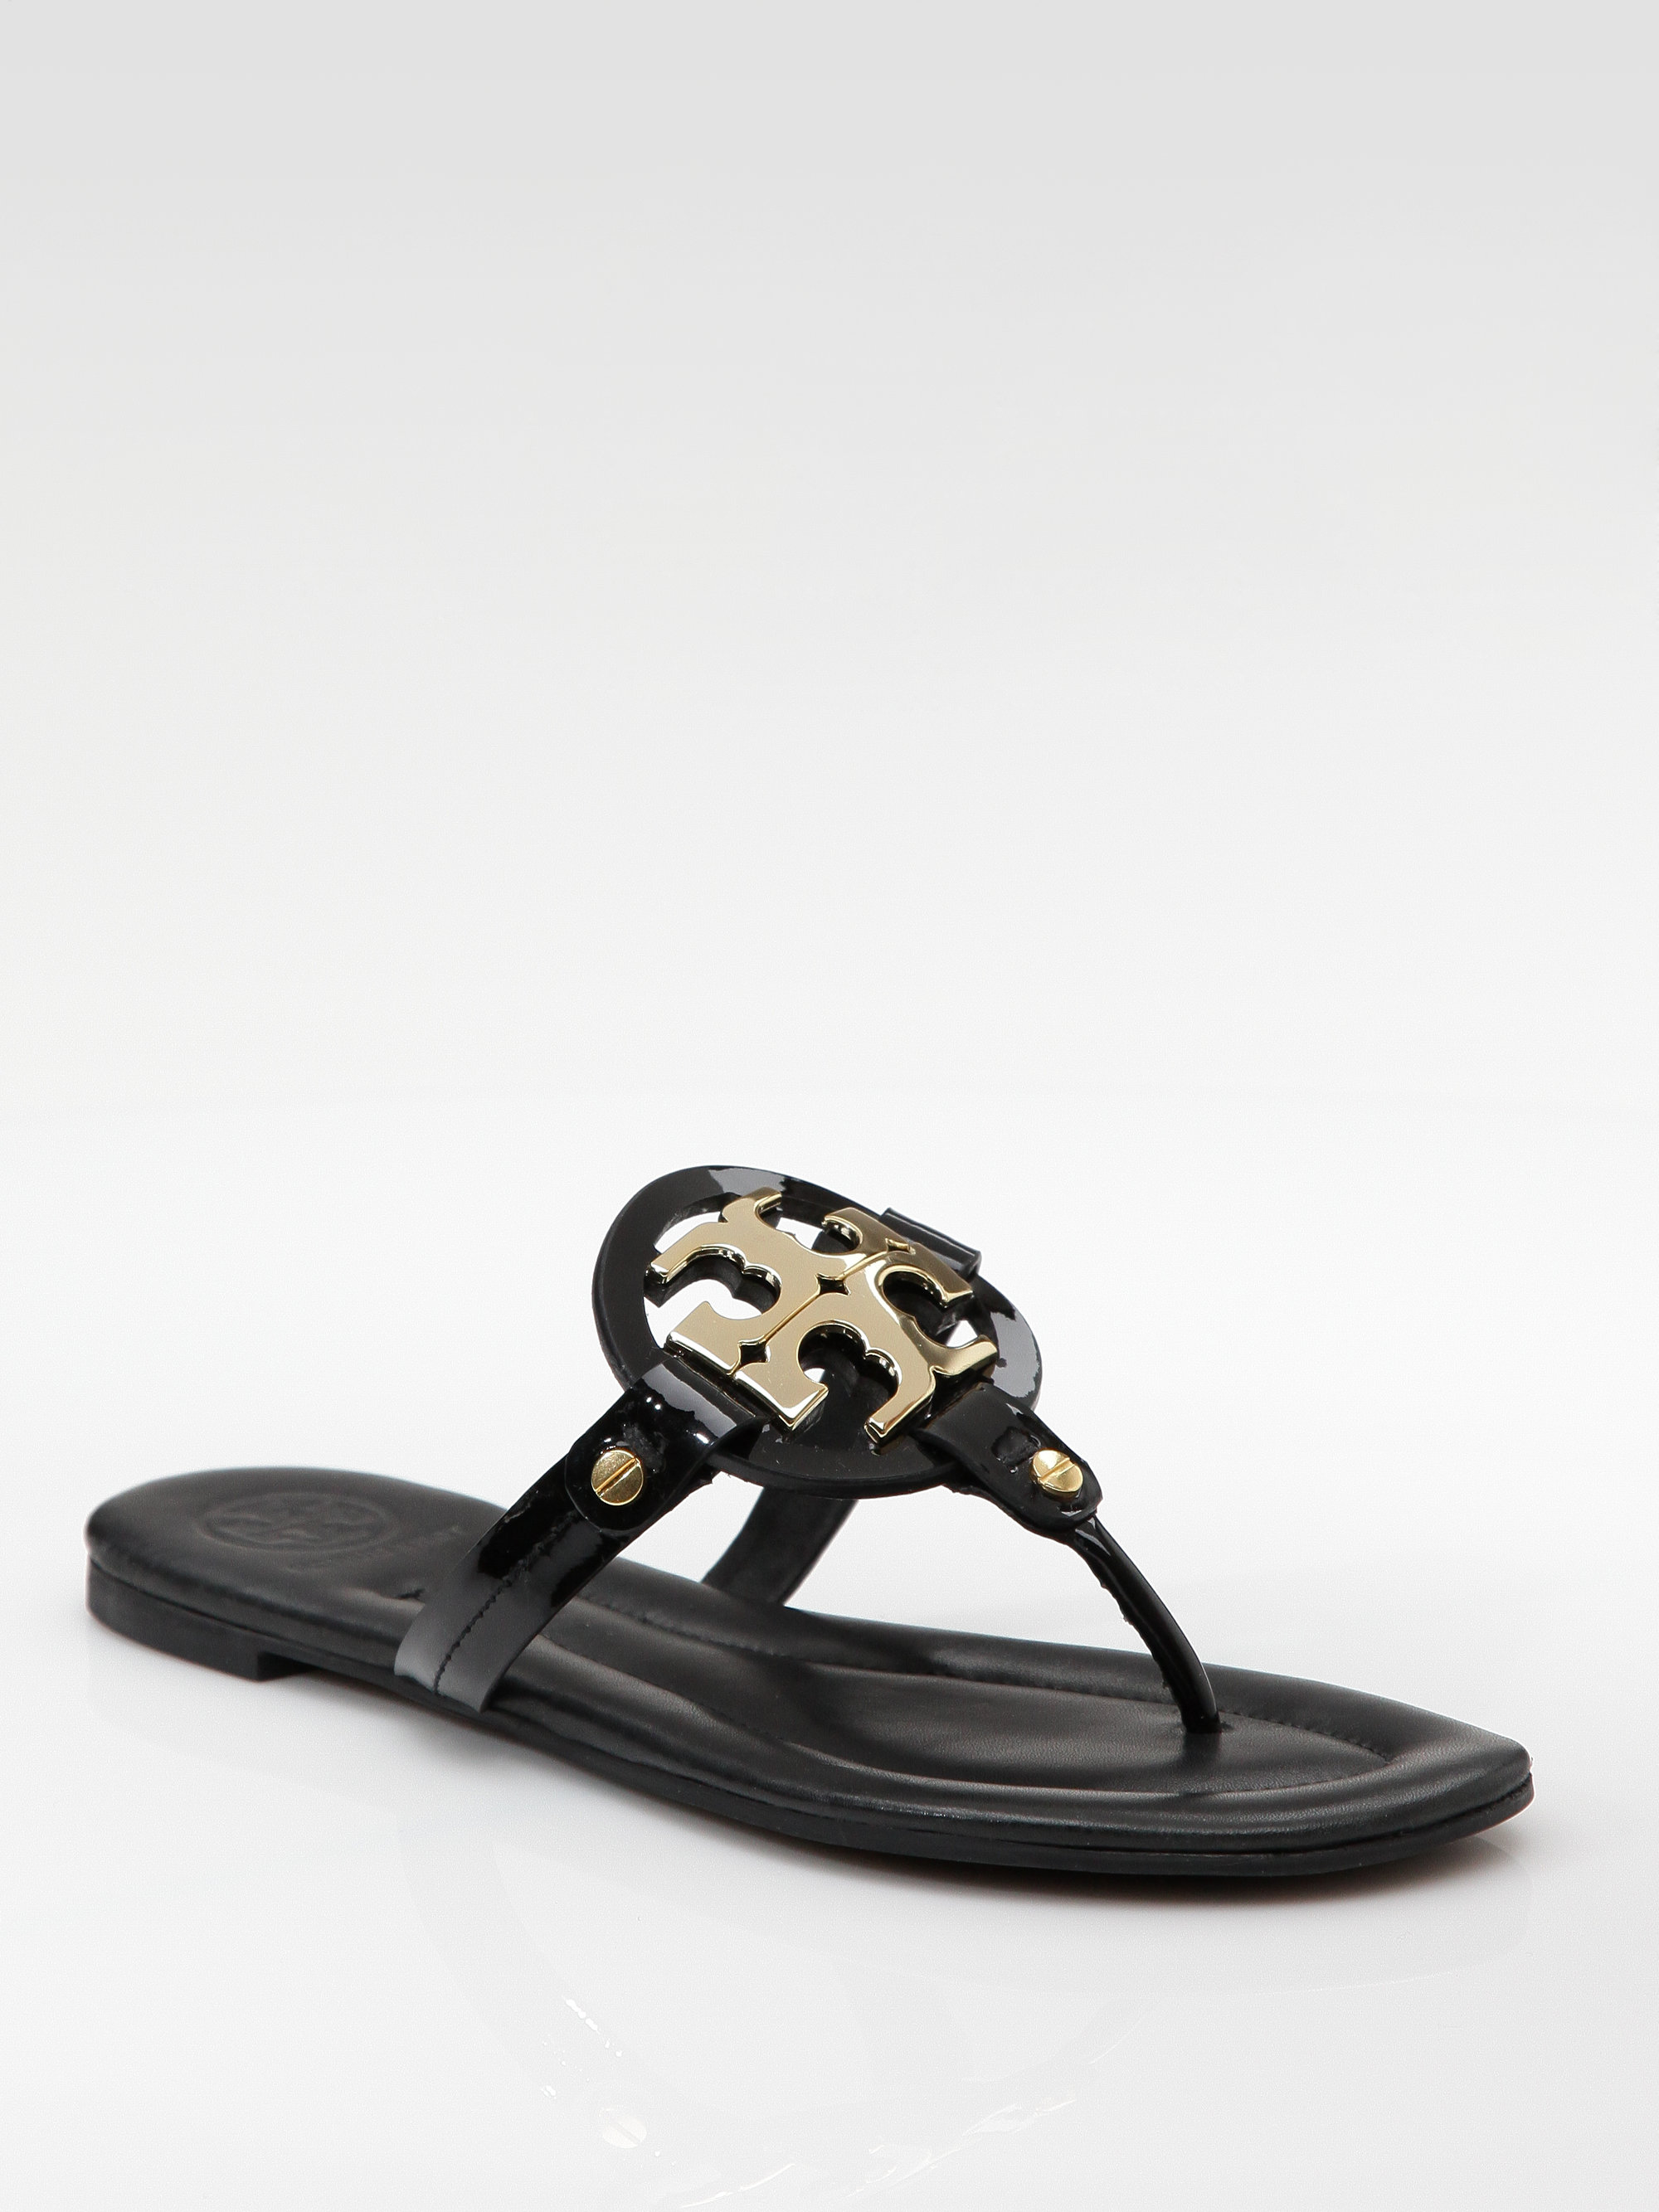 Tory Burch Patent Leather Flat Sandals